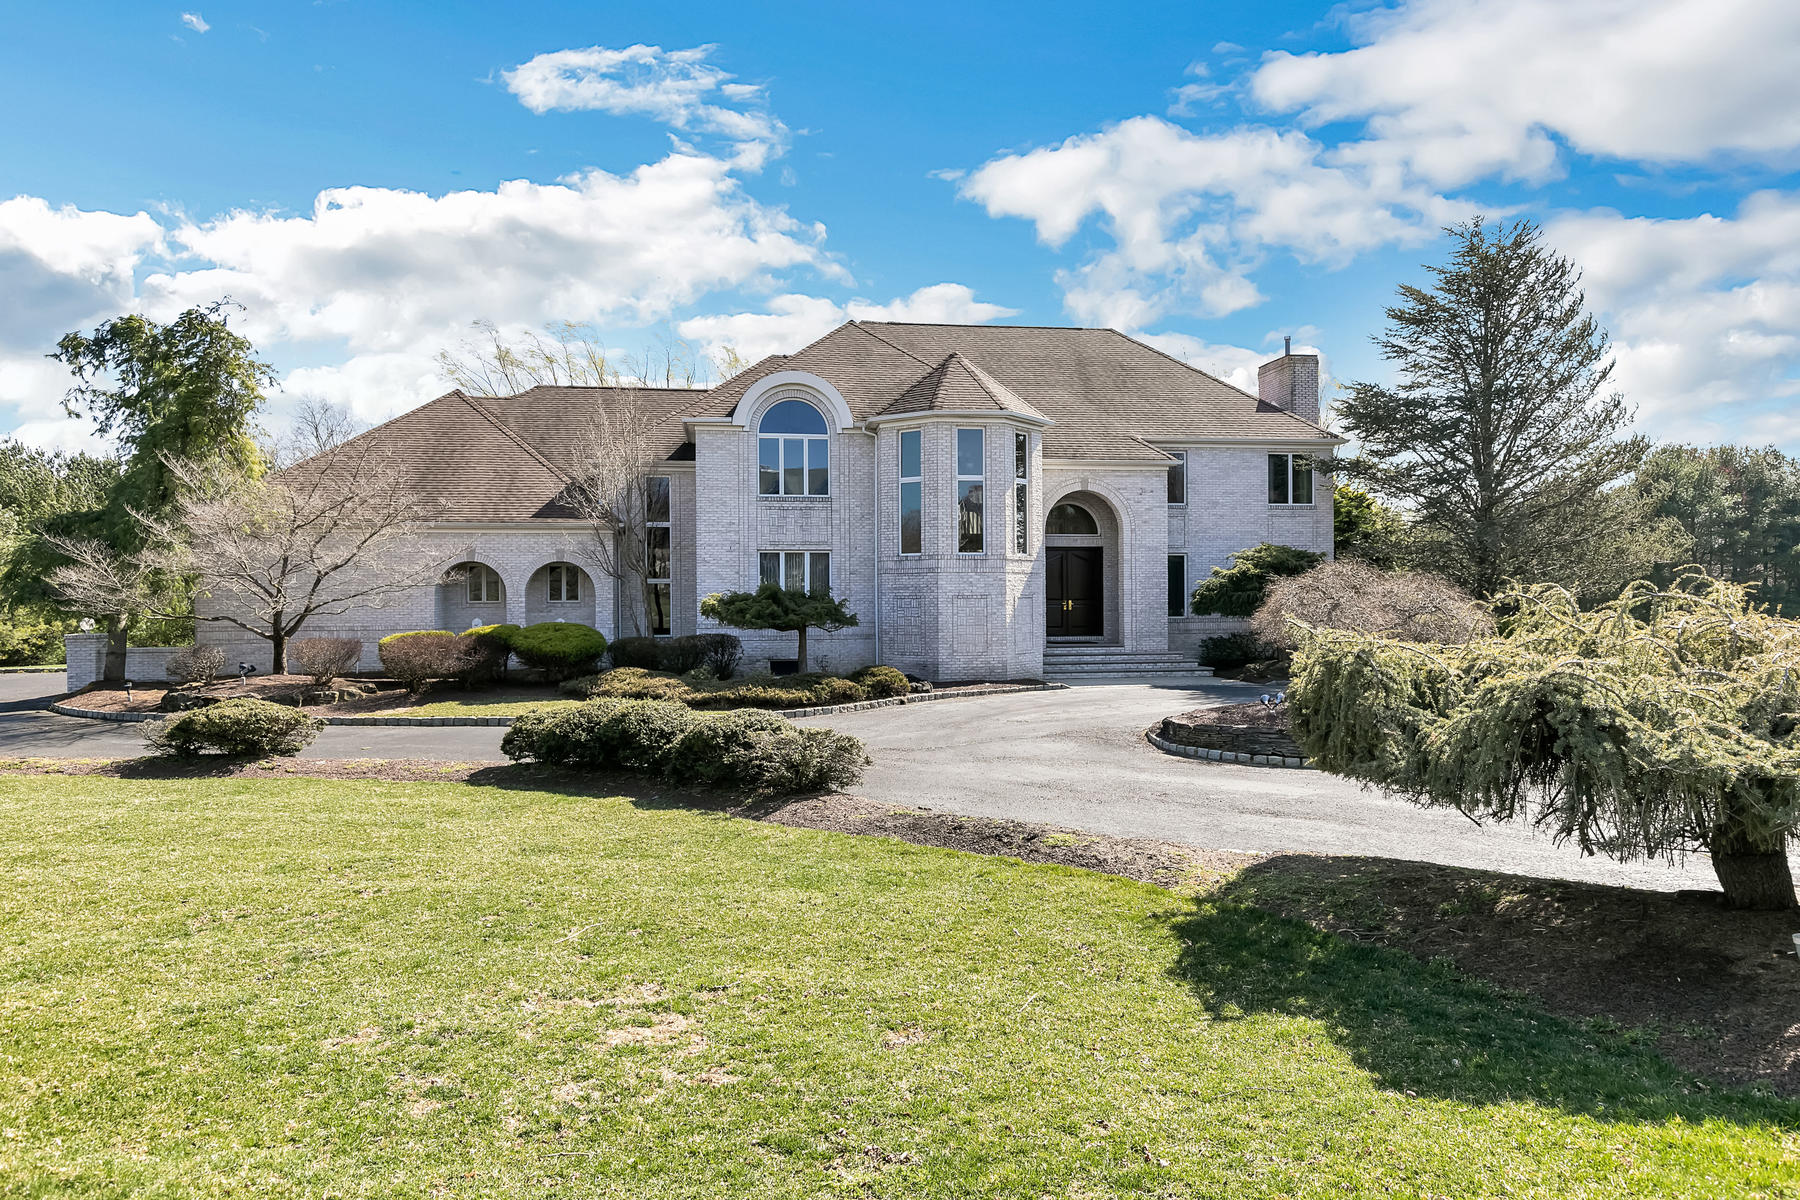 Single Family Homes for Sale at Inspiring Estate 39 Rivers Edge Drive Colts Neck, New Jersey 07722 United States